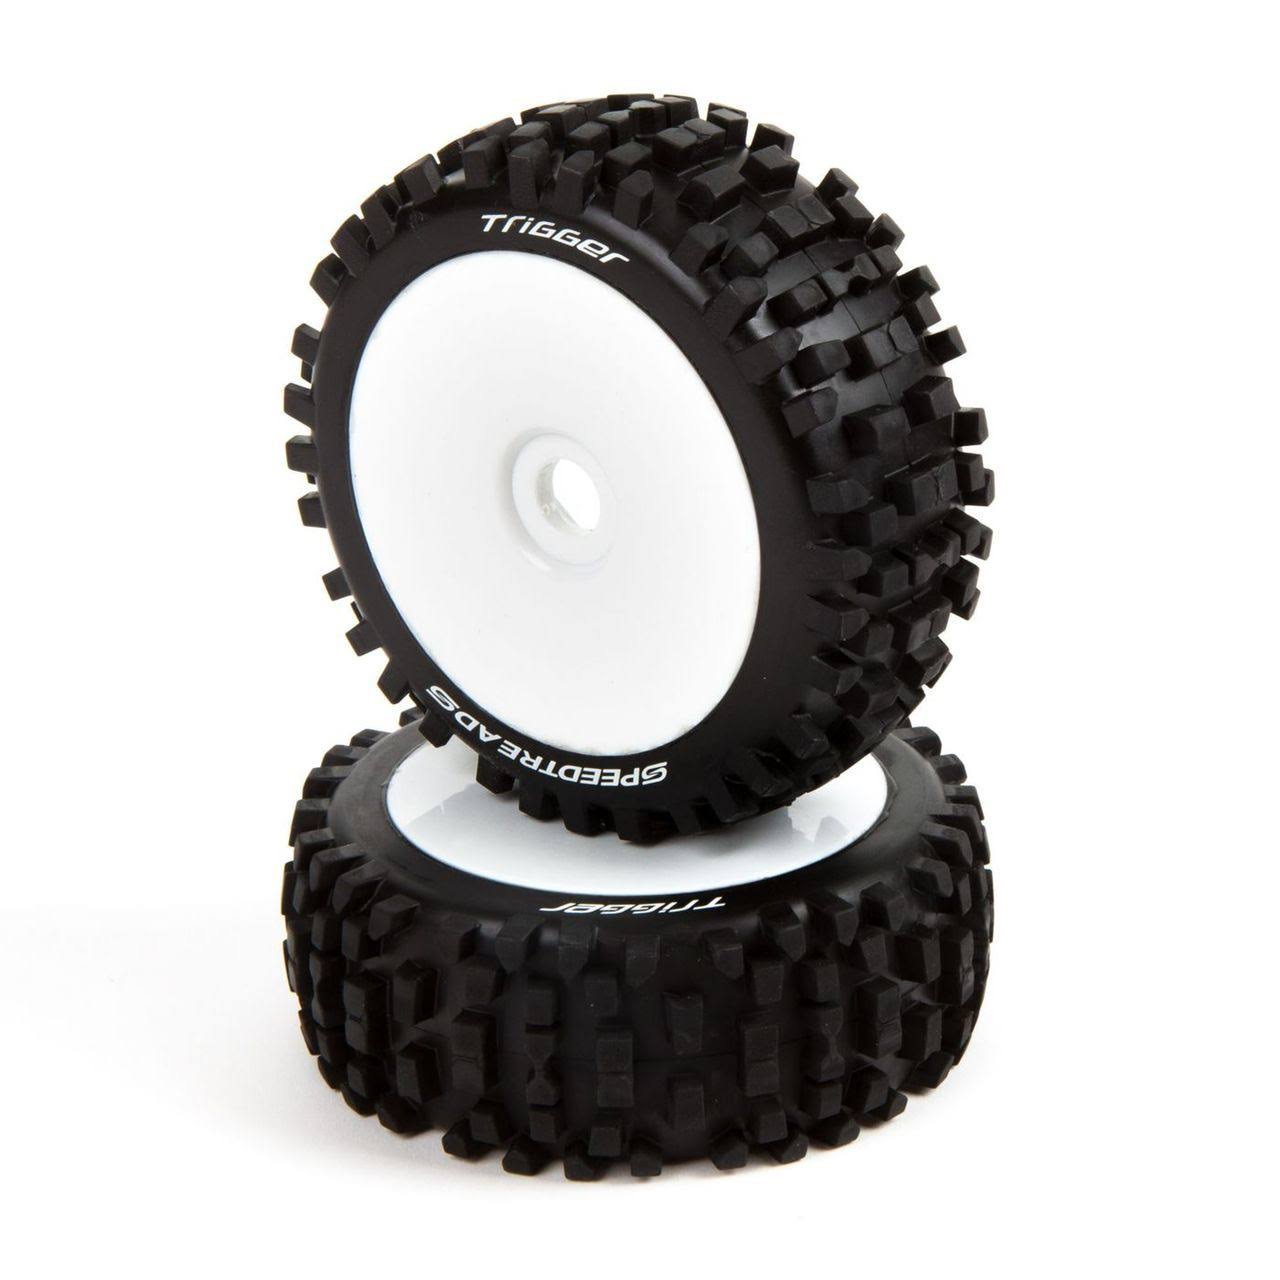 DuraTrax SpeedTreads Trigger Buggy Tires